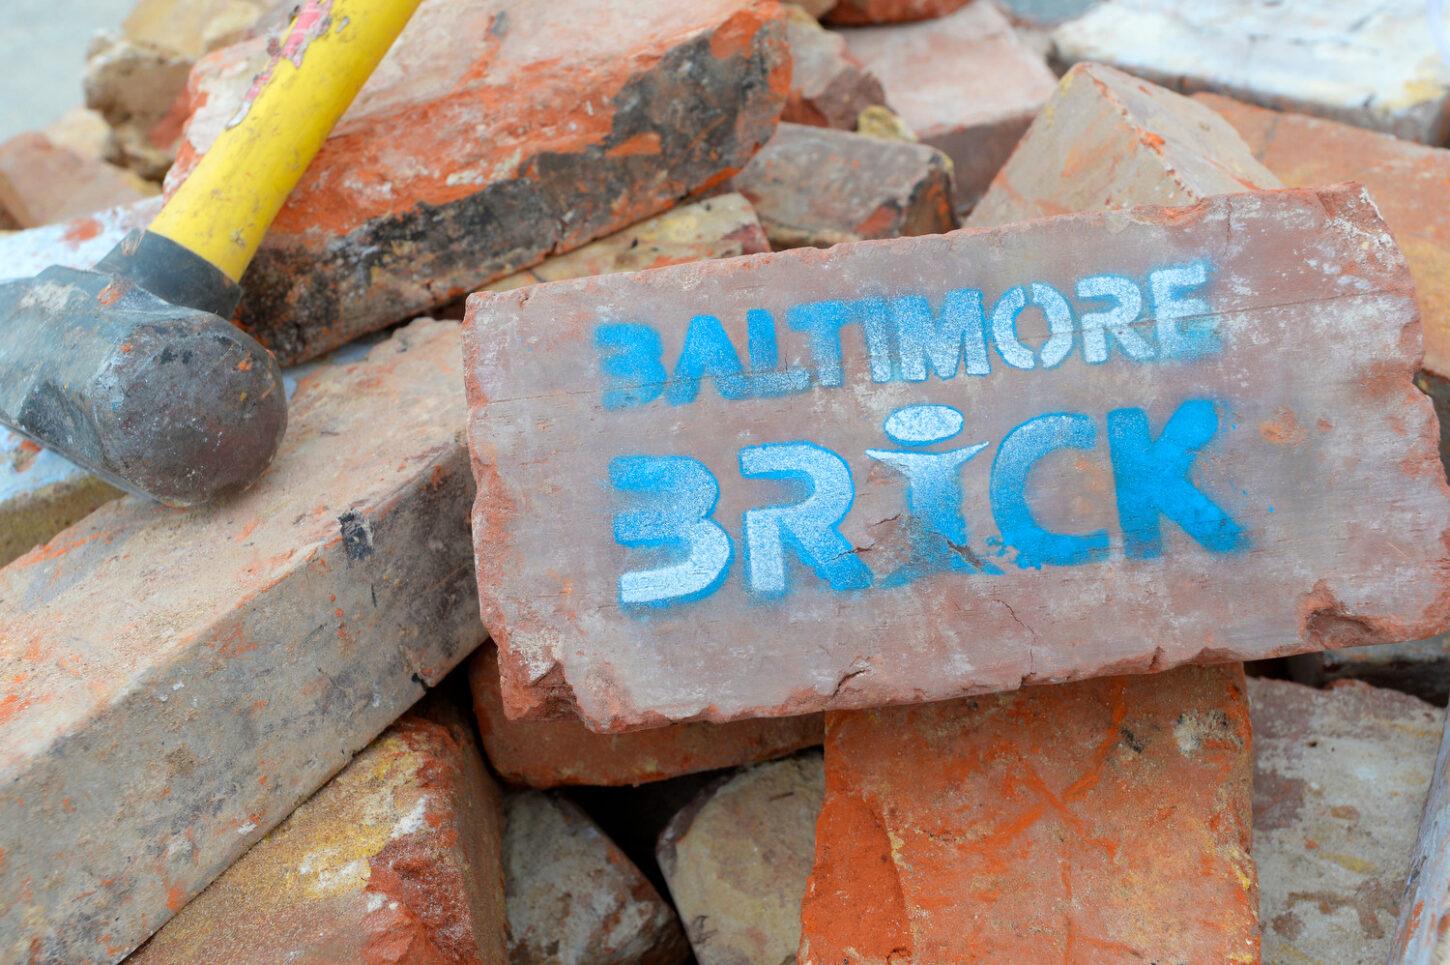 Baltimore Housing Working to Make a Better Baltimore